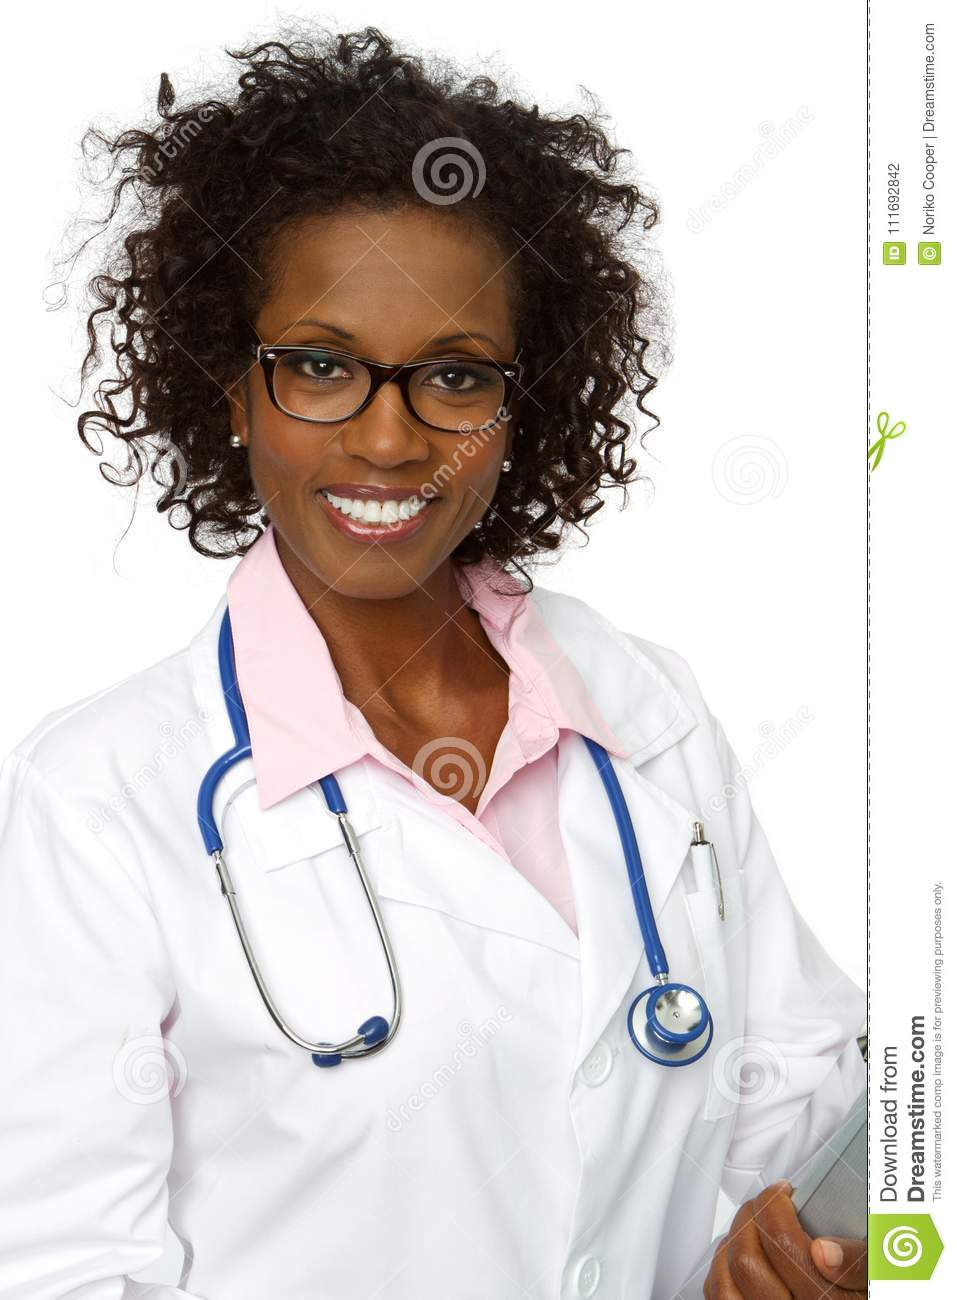 Download Friendly African American Doctor Smiling. Stock Photo - Image of nurse, people: 111692842